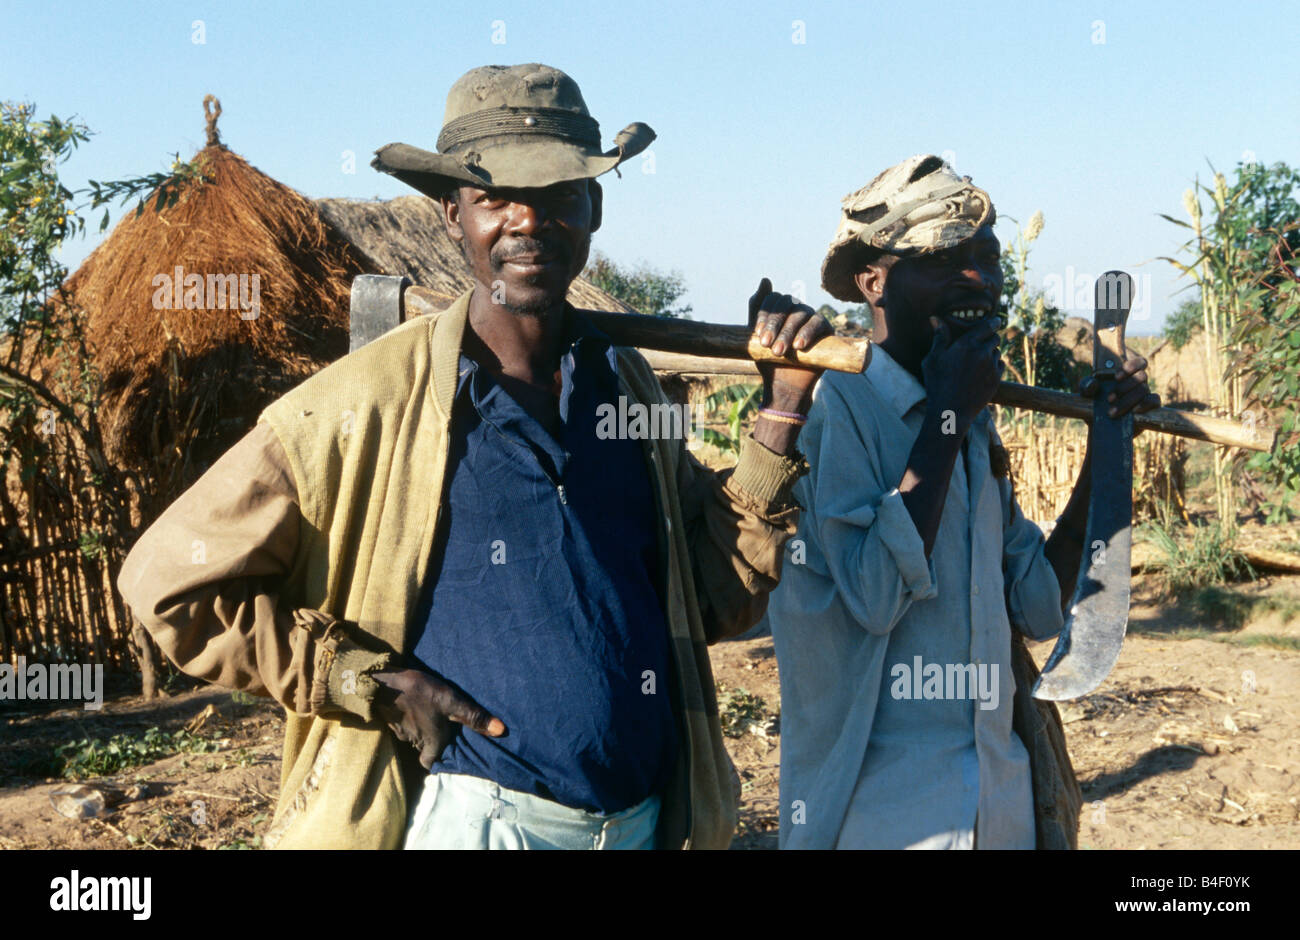 Two male farm workers carrying tools over their shoulders outside mud hut, portrait, Angola, Africa Stock Photo